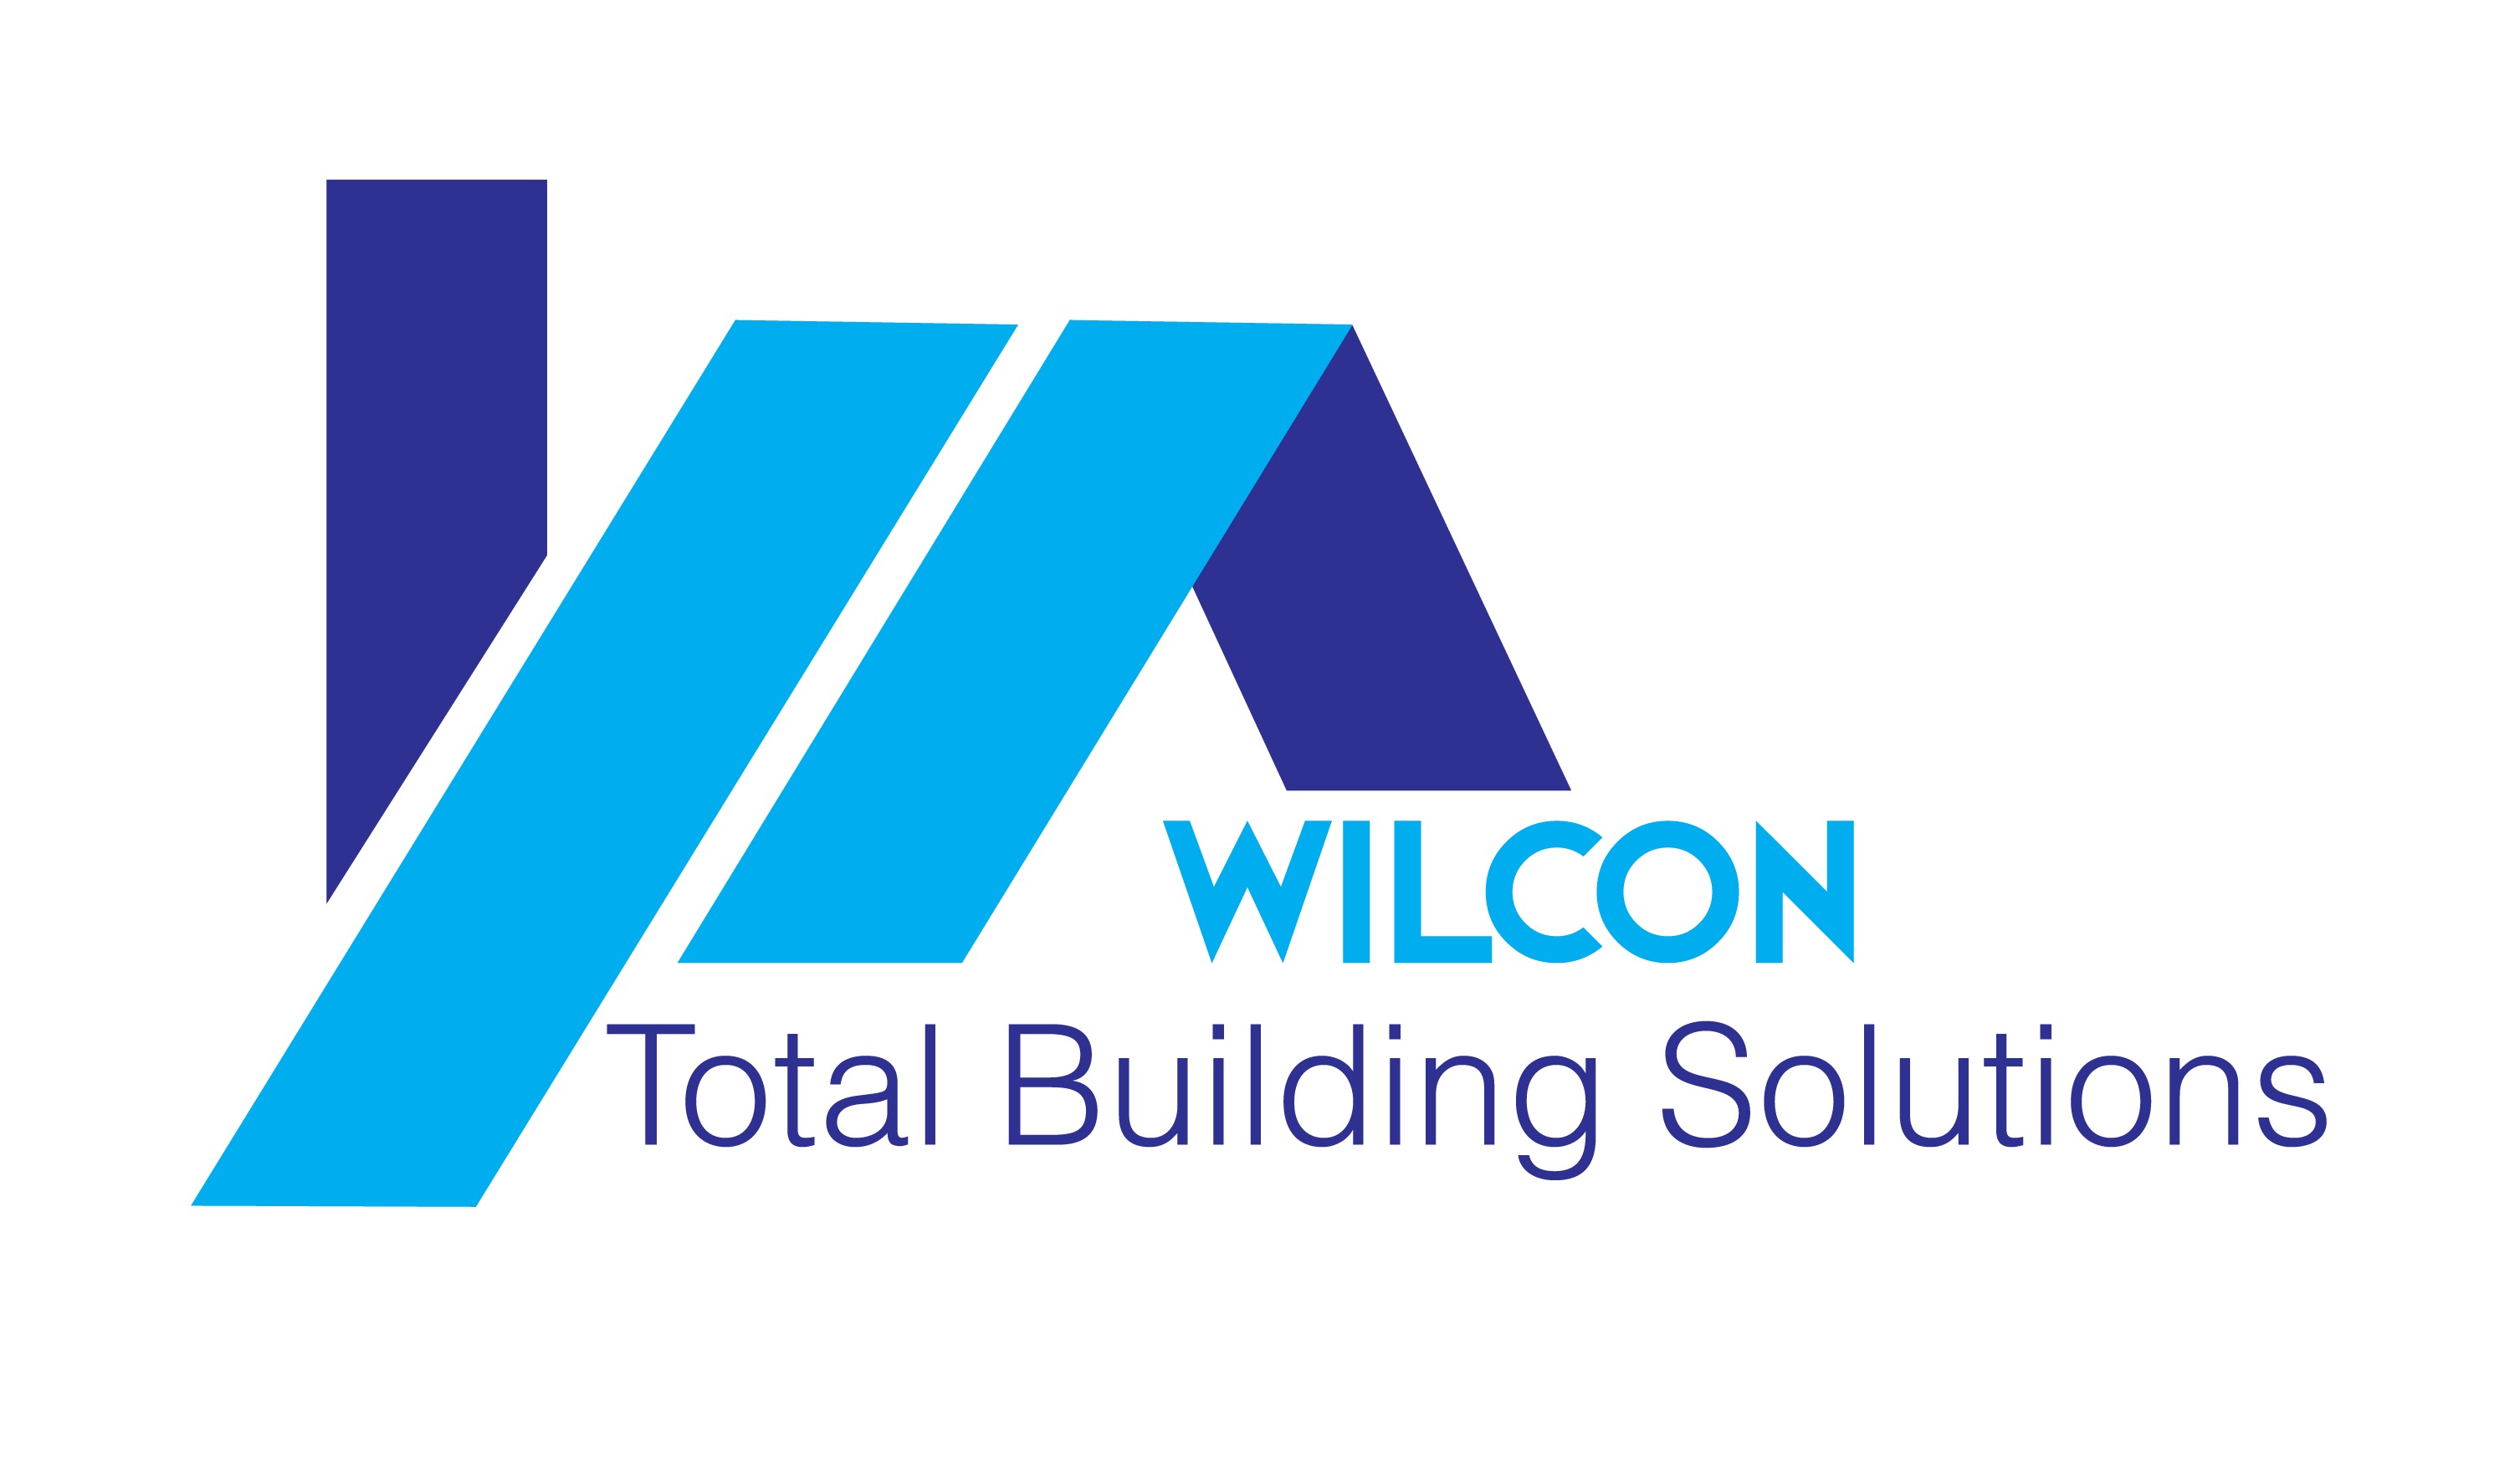 Wilcon Total Building Solutions